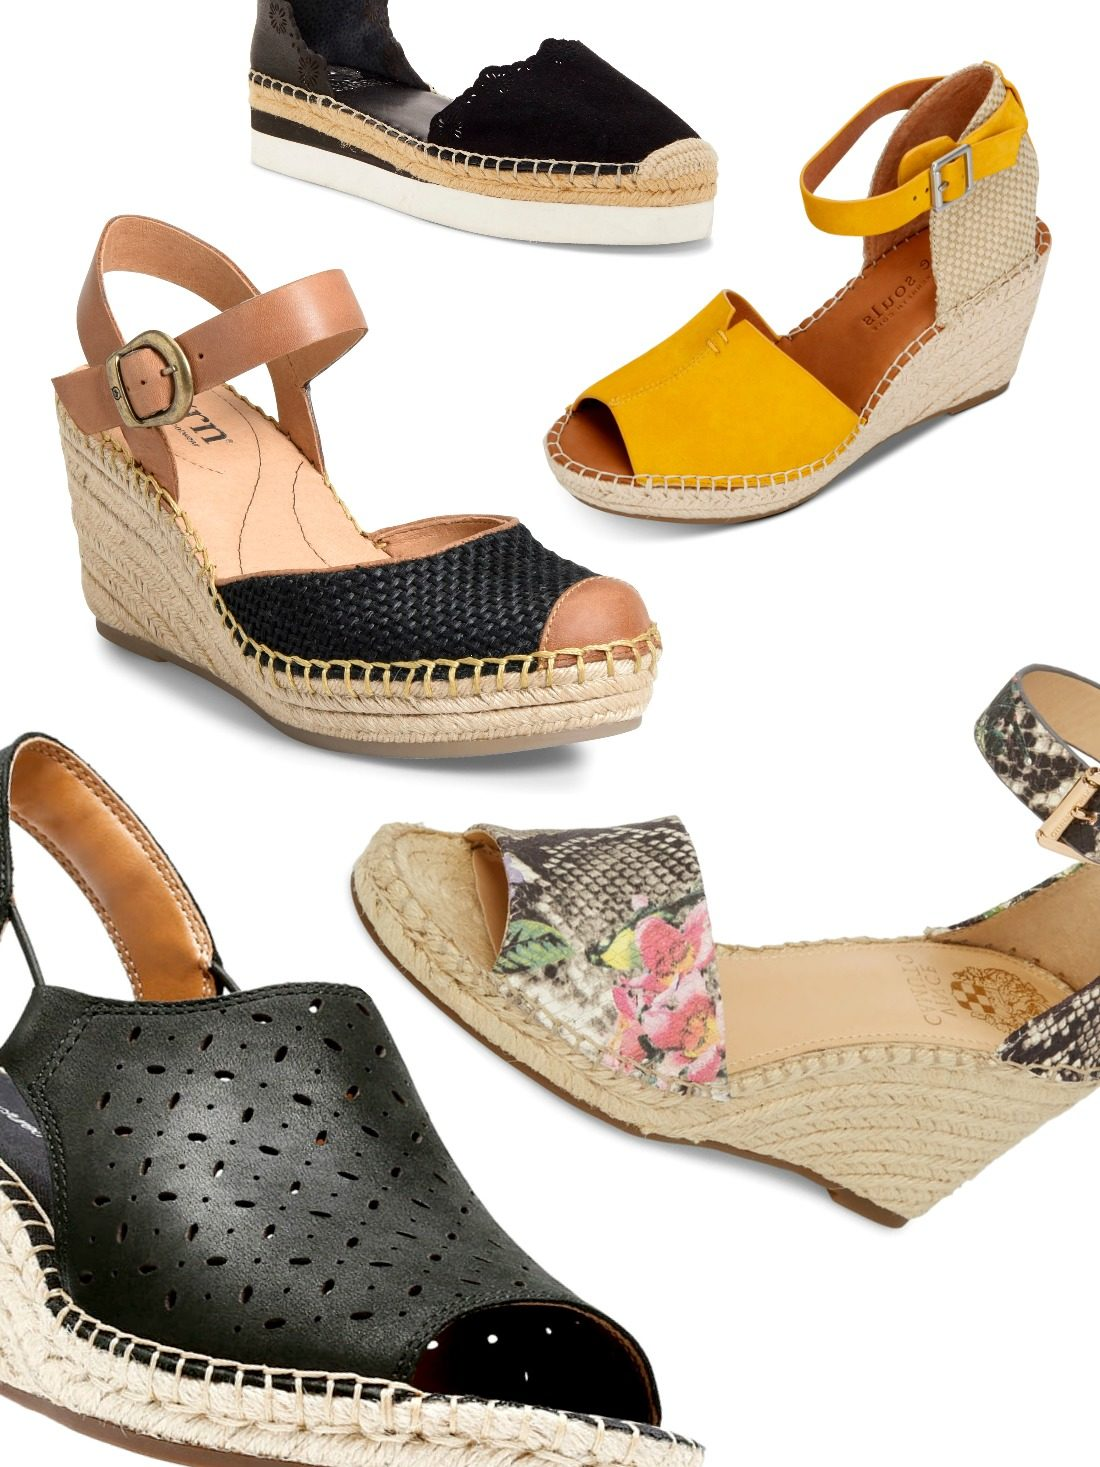 When Summer is ahead, why not deliver a collision with some dapper warm-weather shoes? Our list of the best cute womens espadrille wedges packs the perfect punch to be comfy, sassy, and trendy all at the same time!